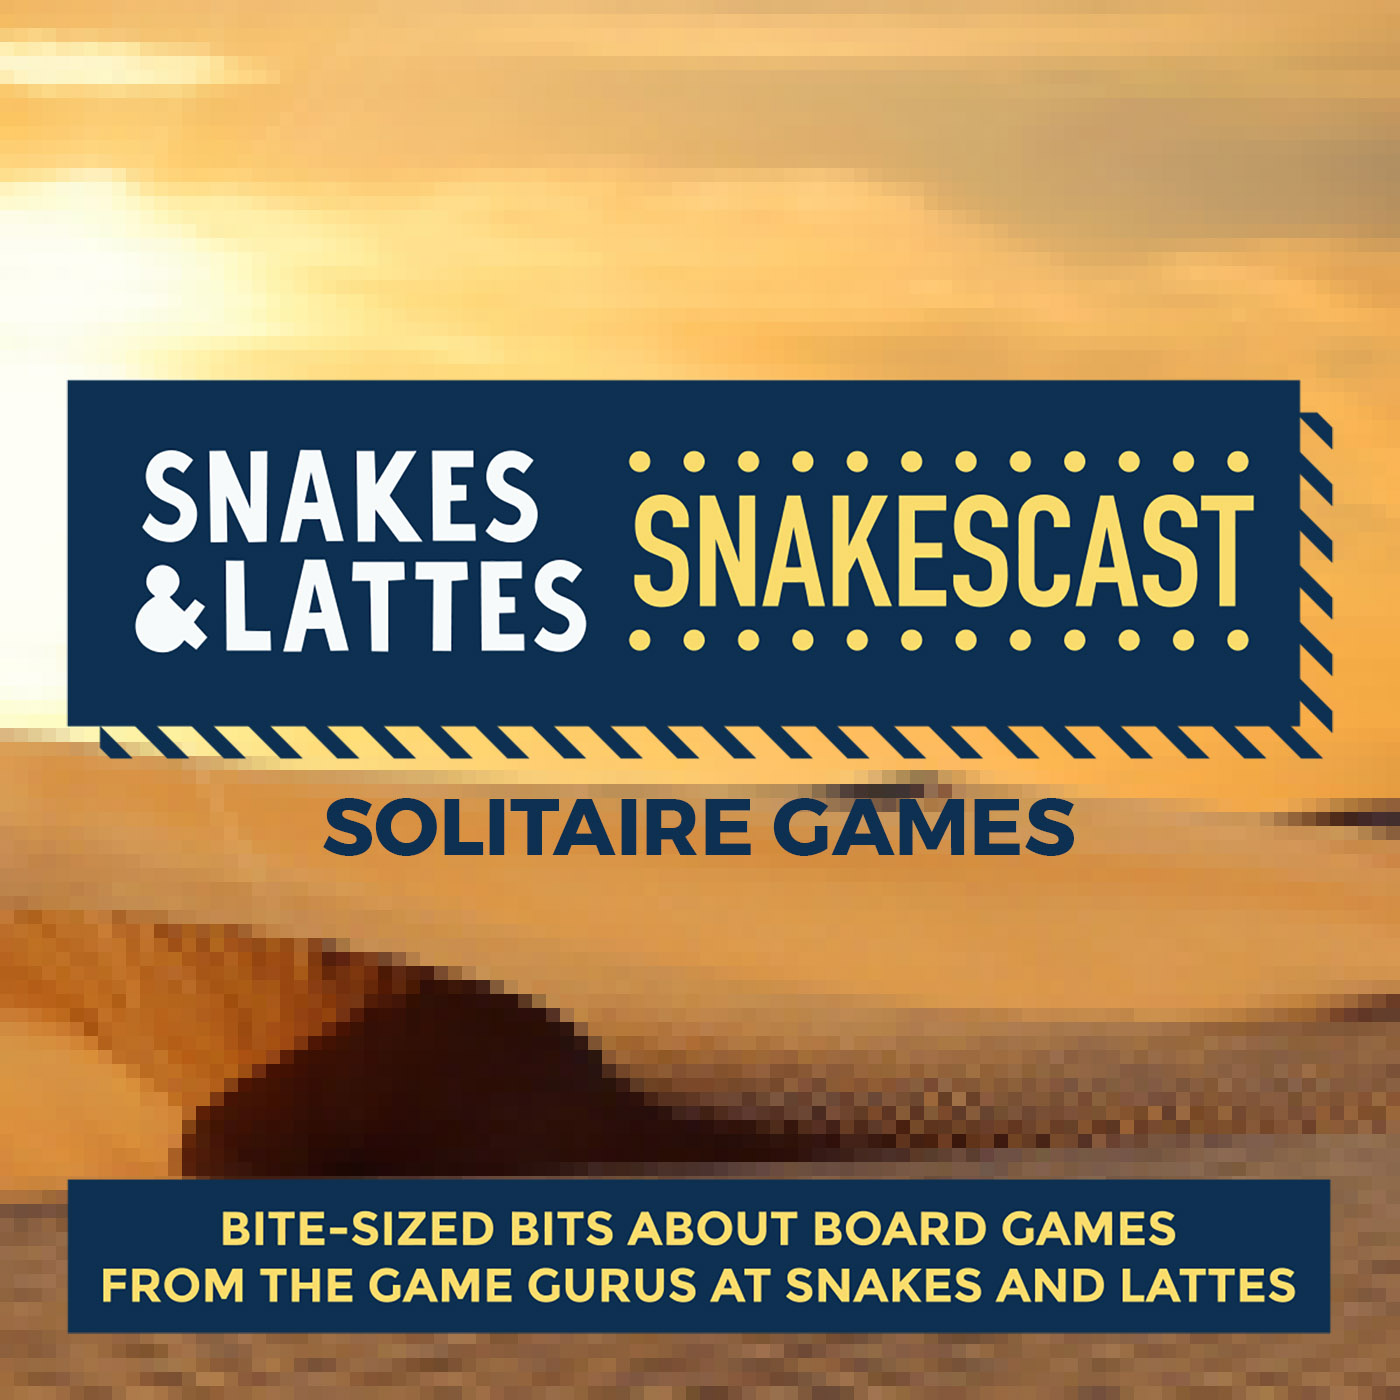 Solitaire Games, Part 2 - Some great examples of solo games